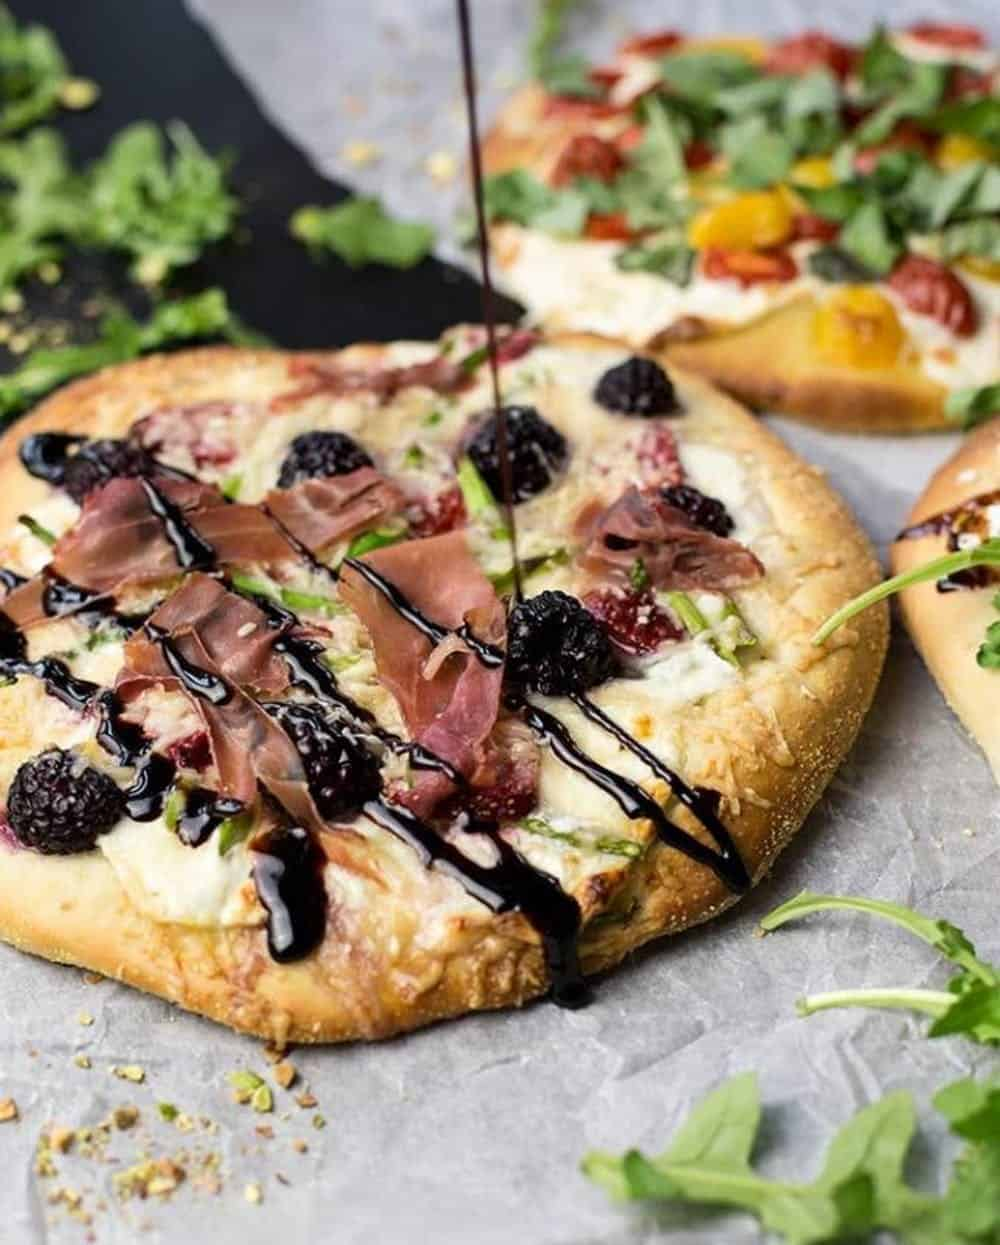 Blackberry asparagus prosciutto pizza